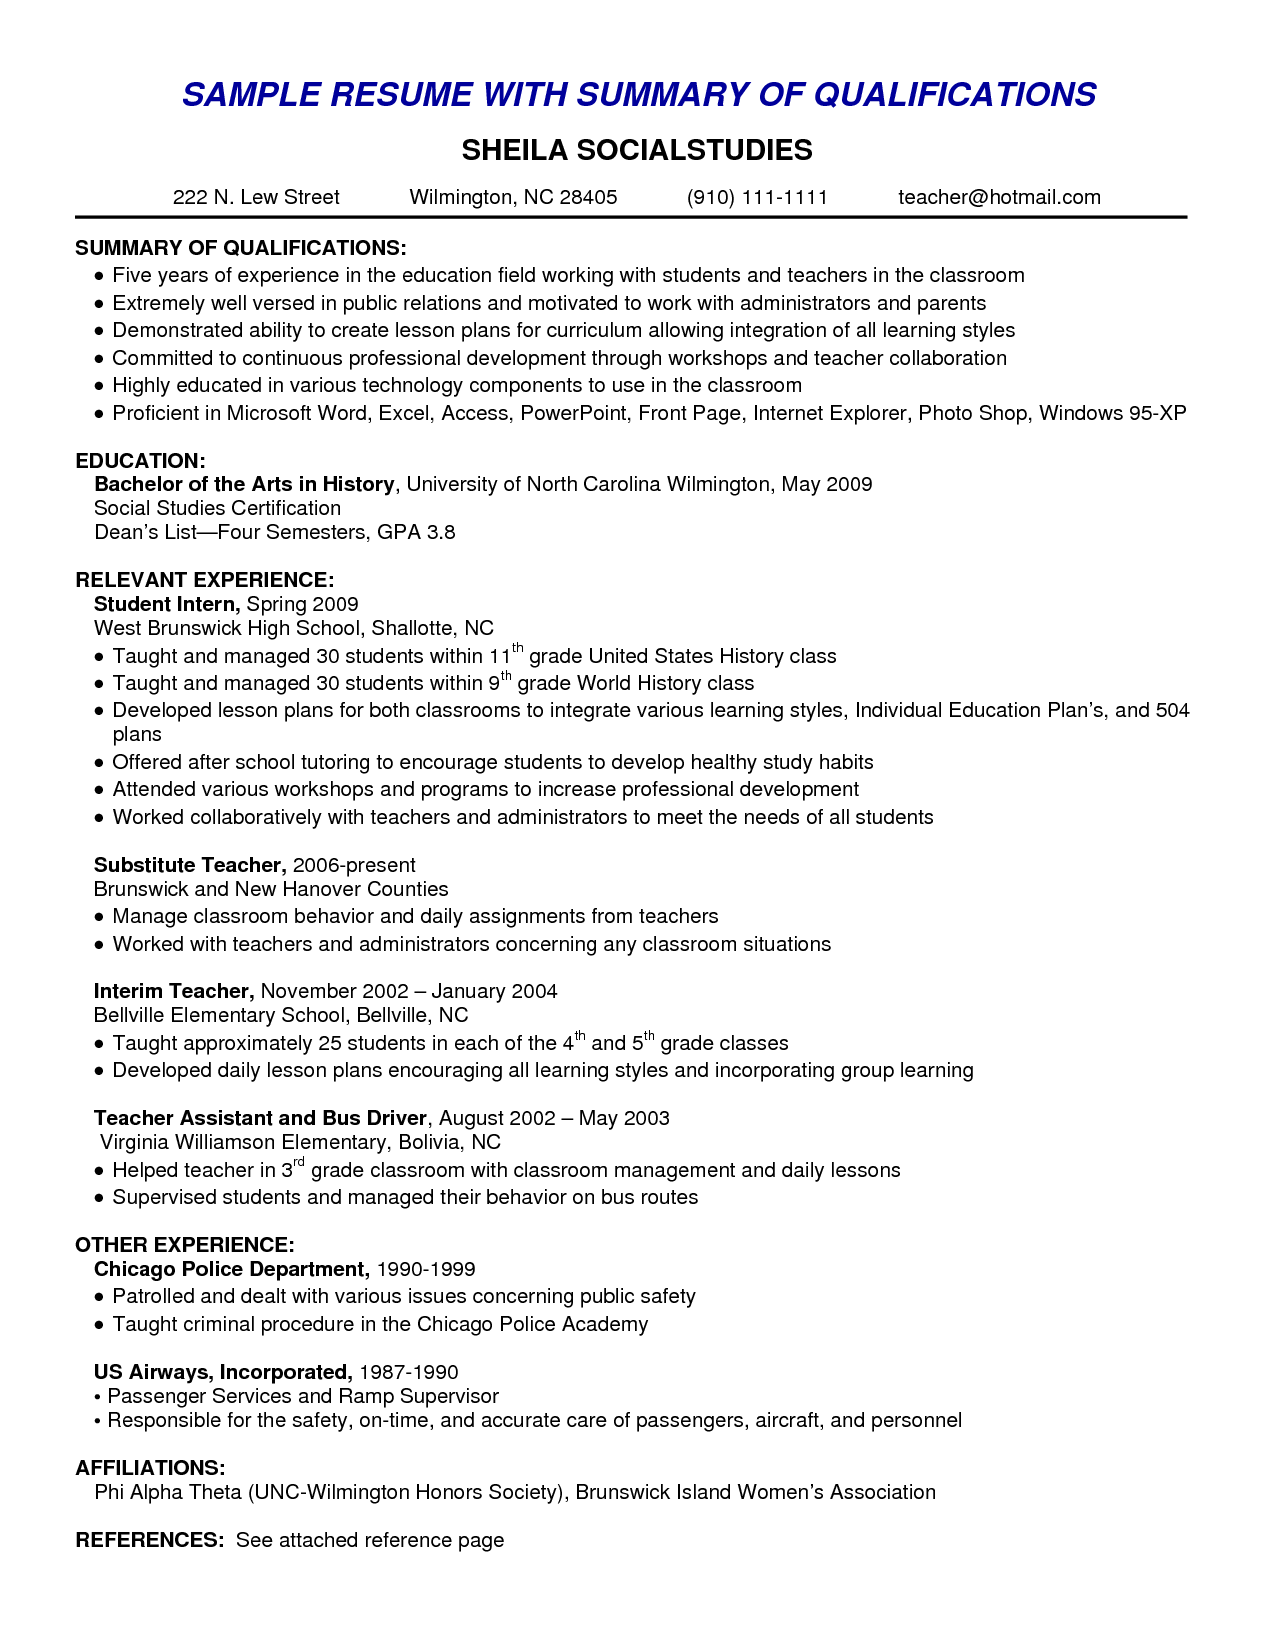 Summary Of Qualifications For A Resume - Resume Example 2018 •